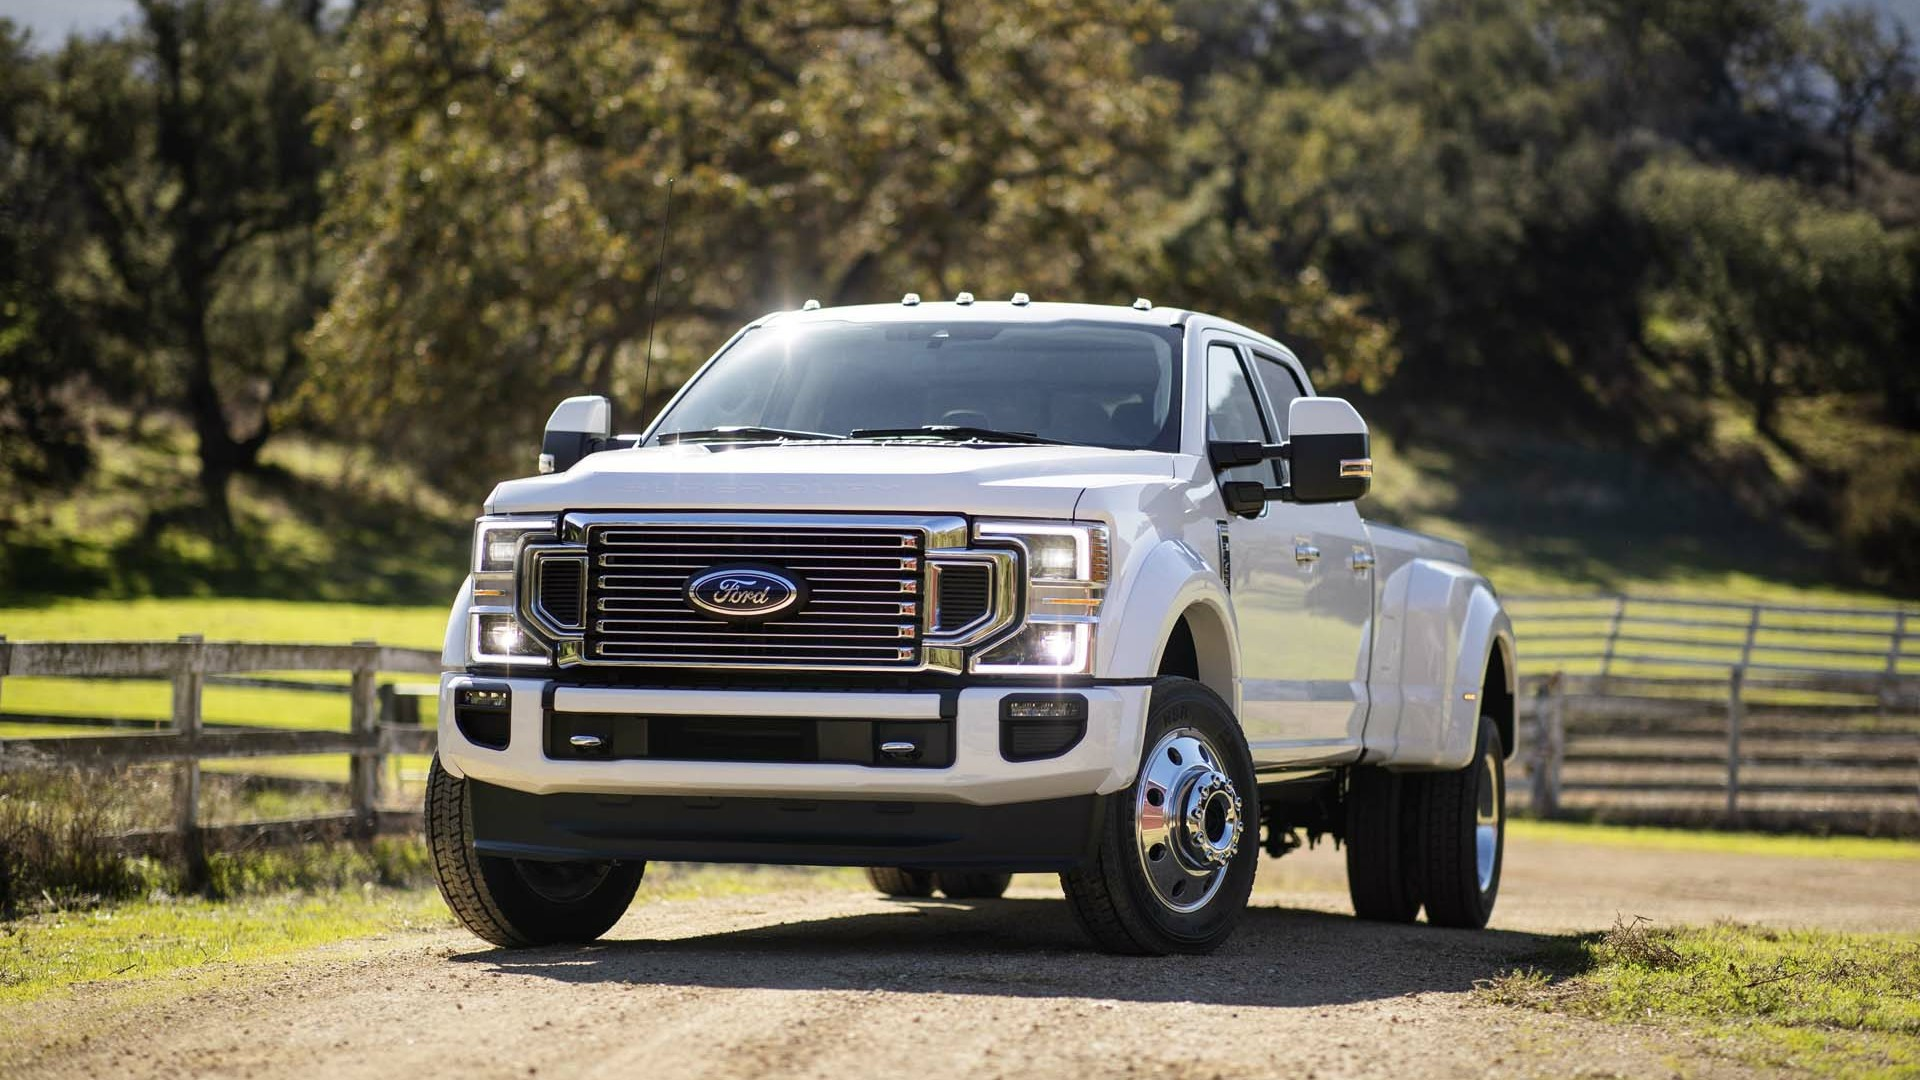 50 All New 2020 Ford F 250 Picture